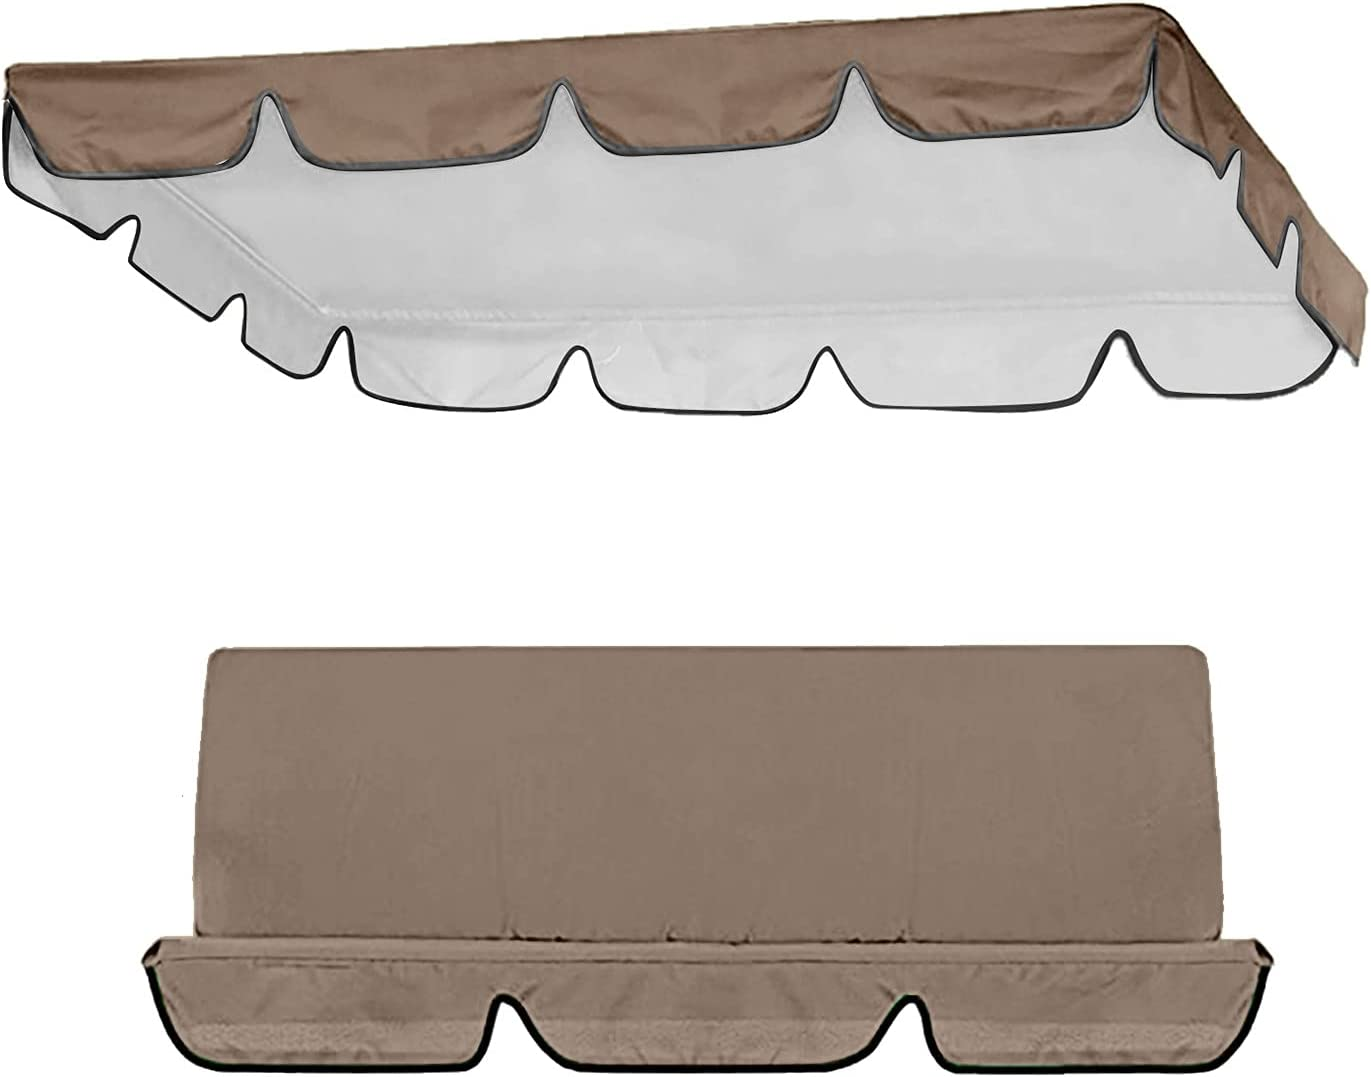 Patio Swing Canopy Replacement Cushions & Cover - Replacement Cover for Swing Canopy, Swing Replacement Canopy and Chair Cover, Garden Seater Sun Shade Porch Swing Replacement Cushions